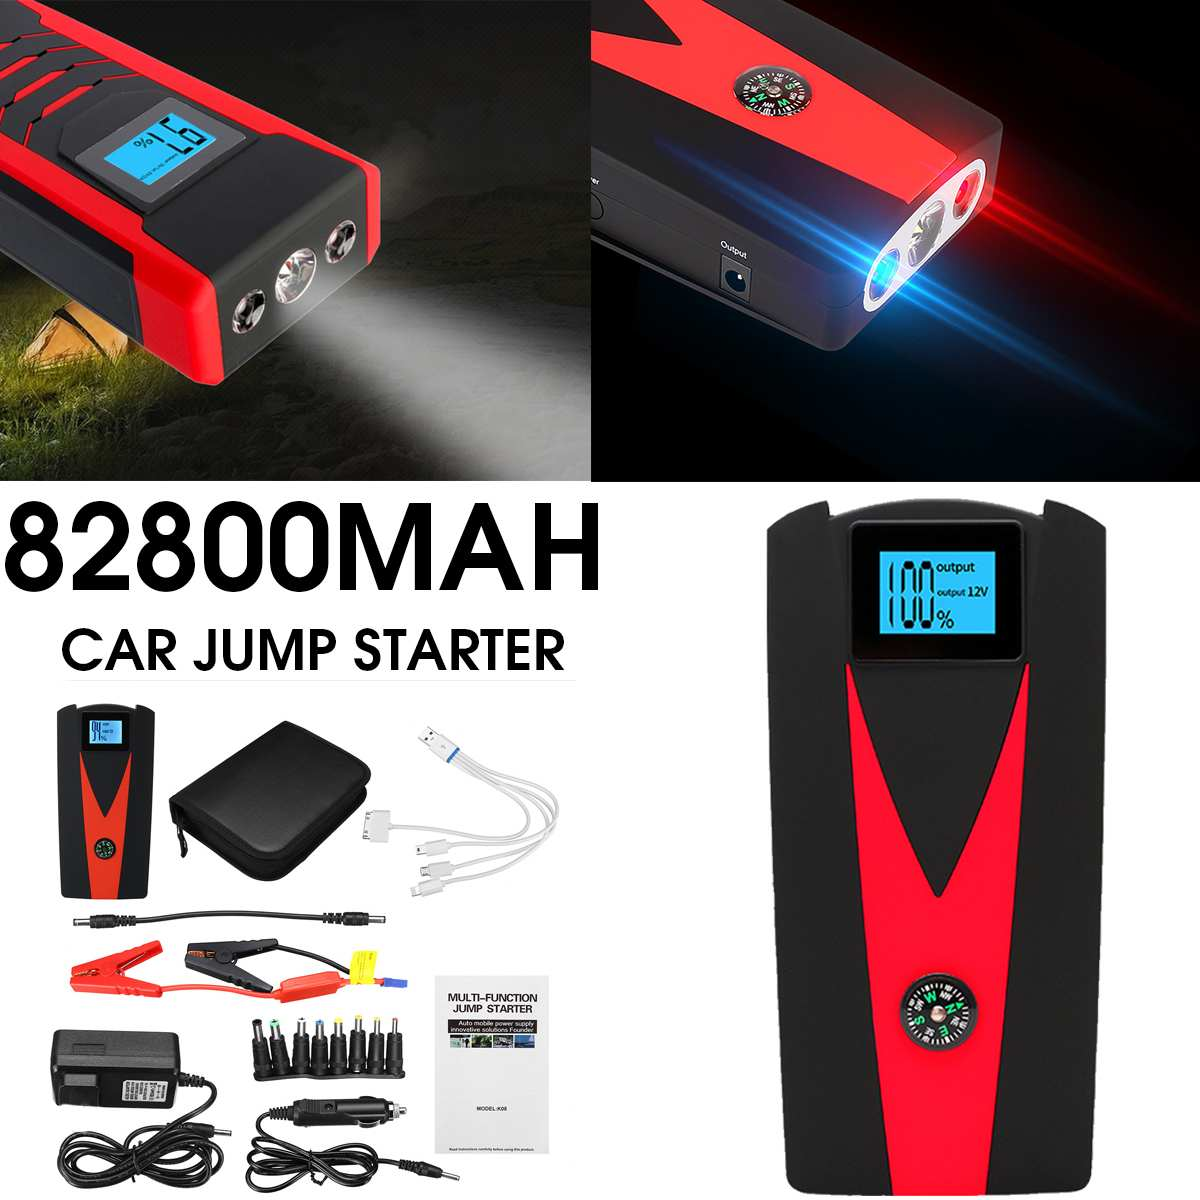 12V 82800mAh Portable Car Jump Starter Booster Battery Charger USB Charger Emergency Power Car LED For Starting Device